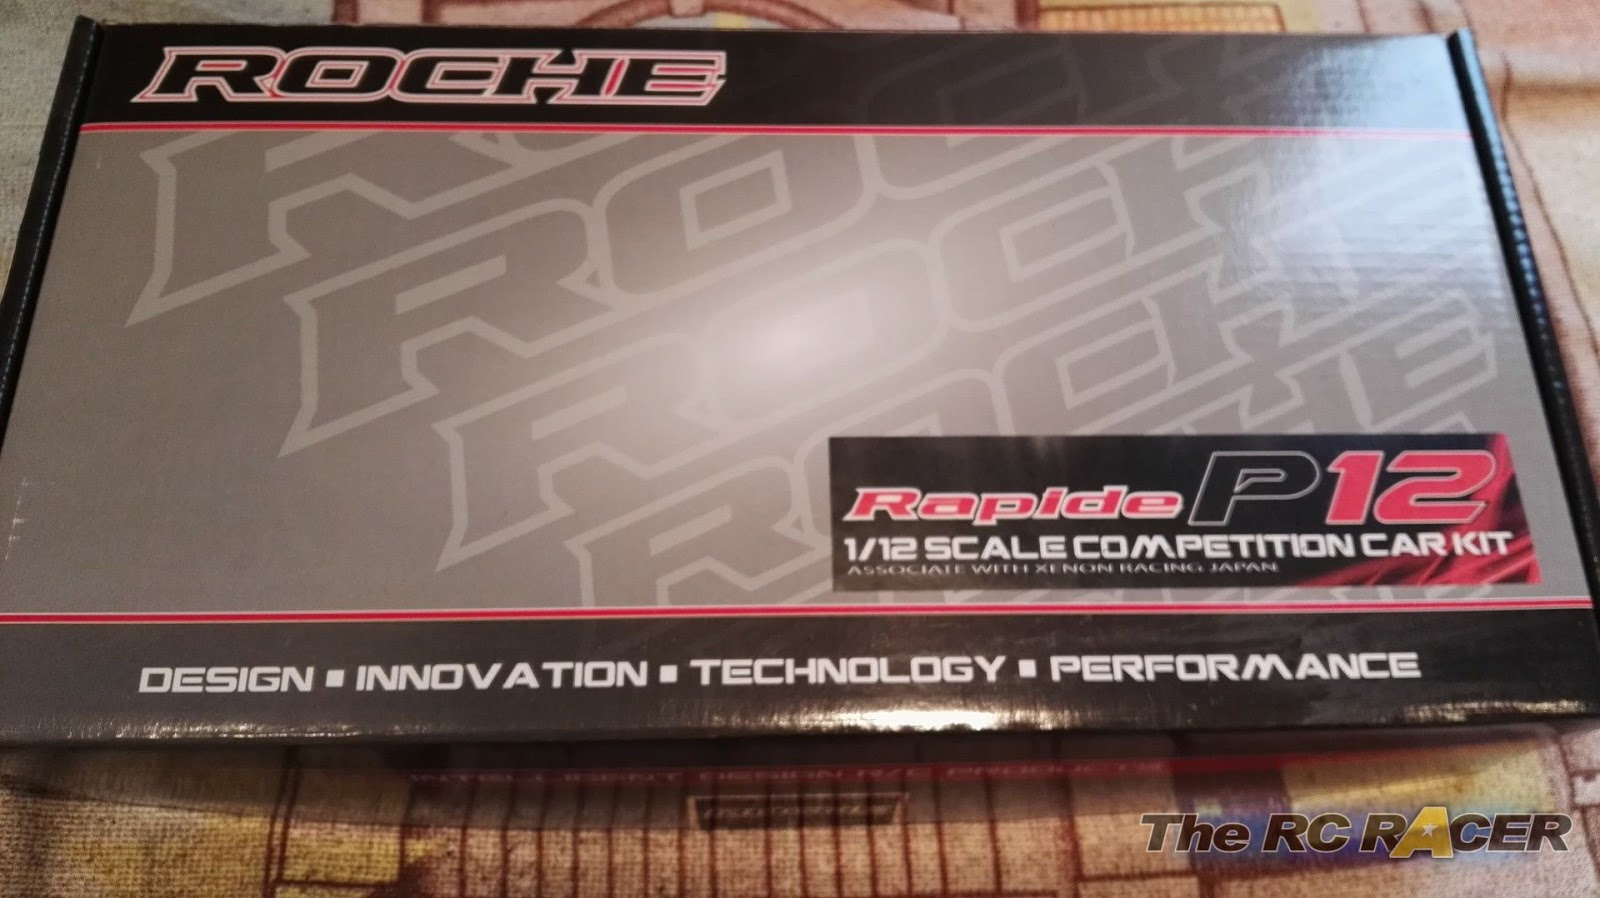 Roche P12 Rapide Build tips and Review   The RC Racer